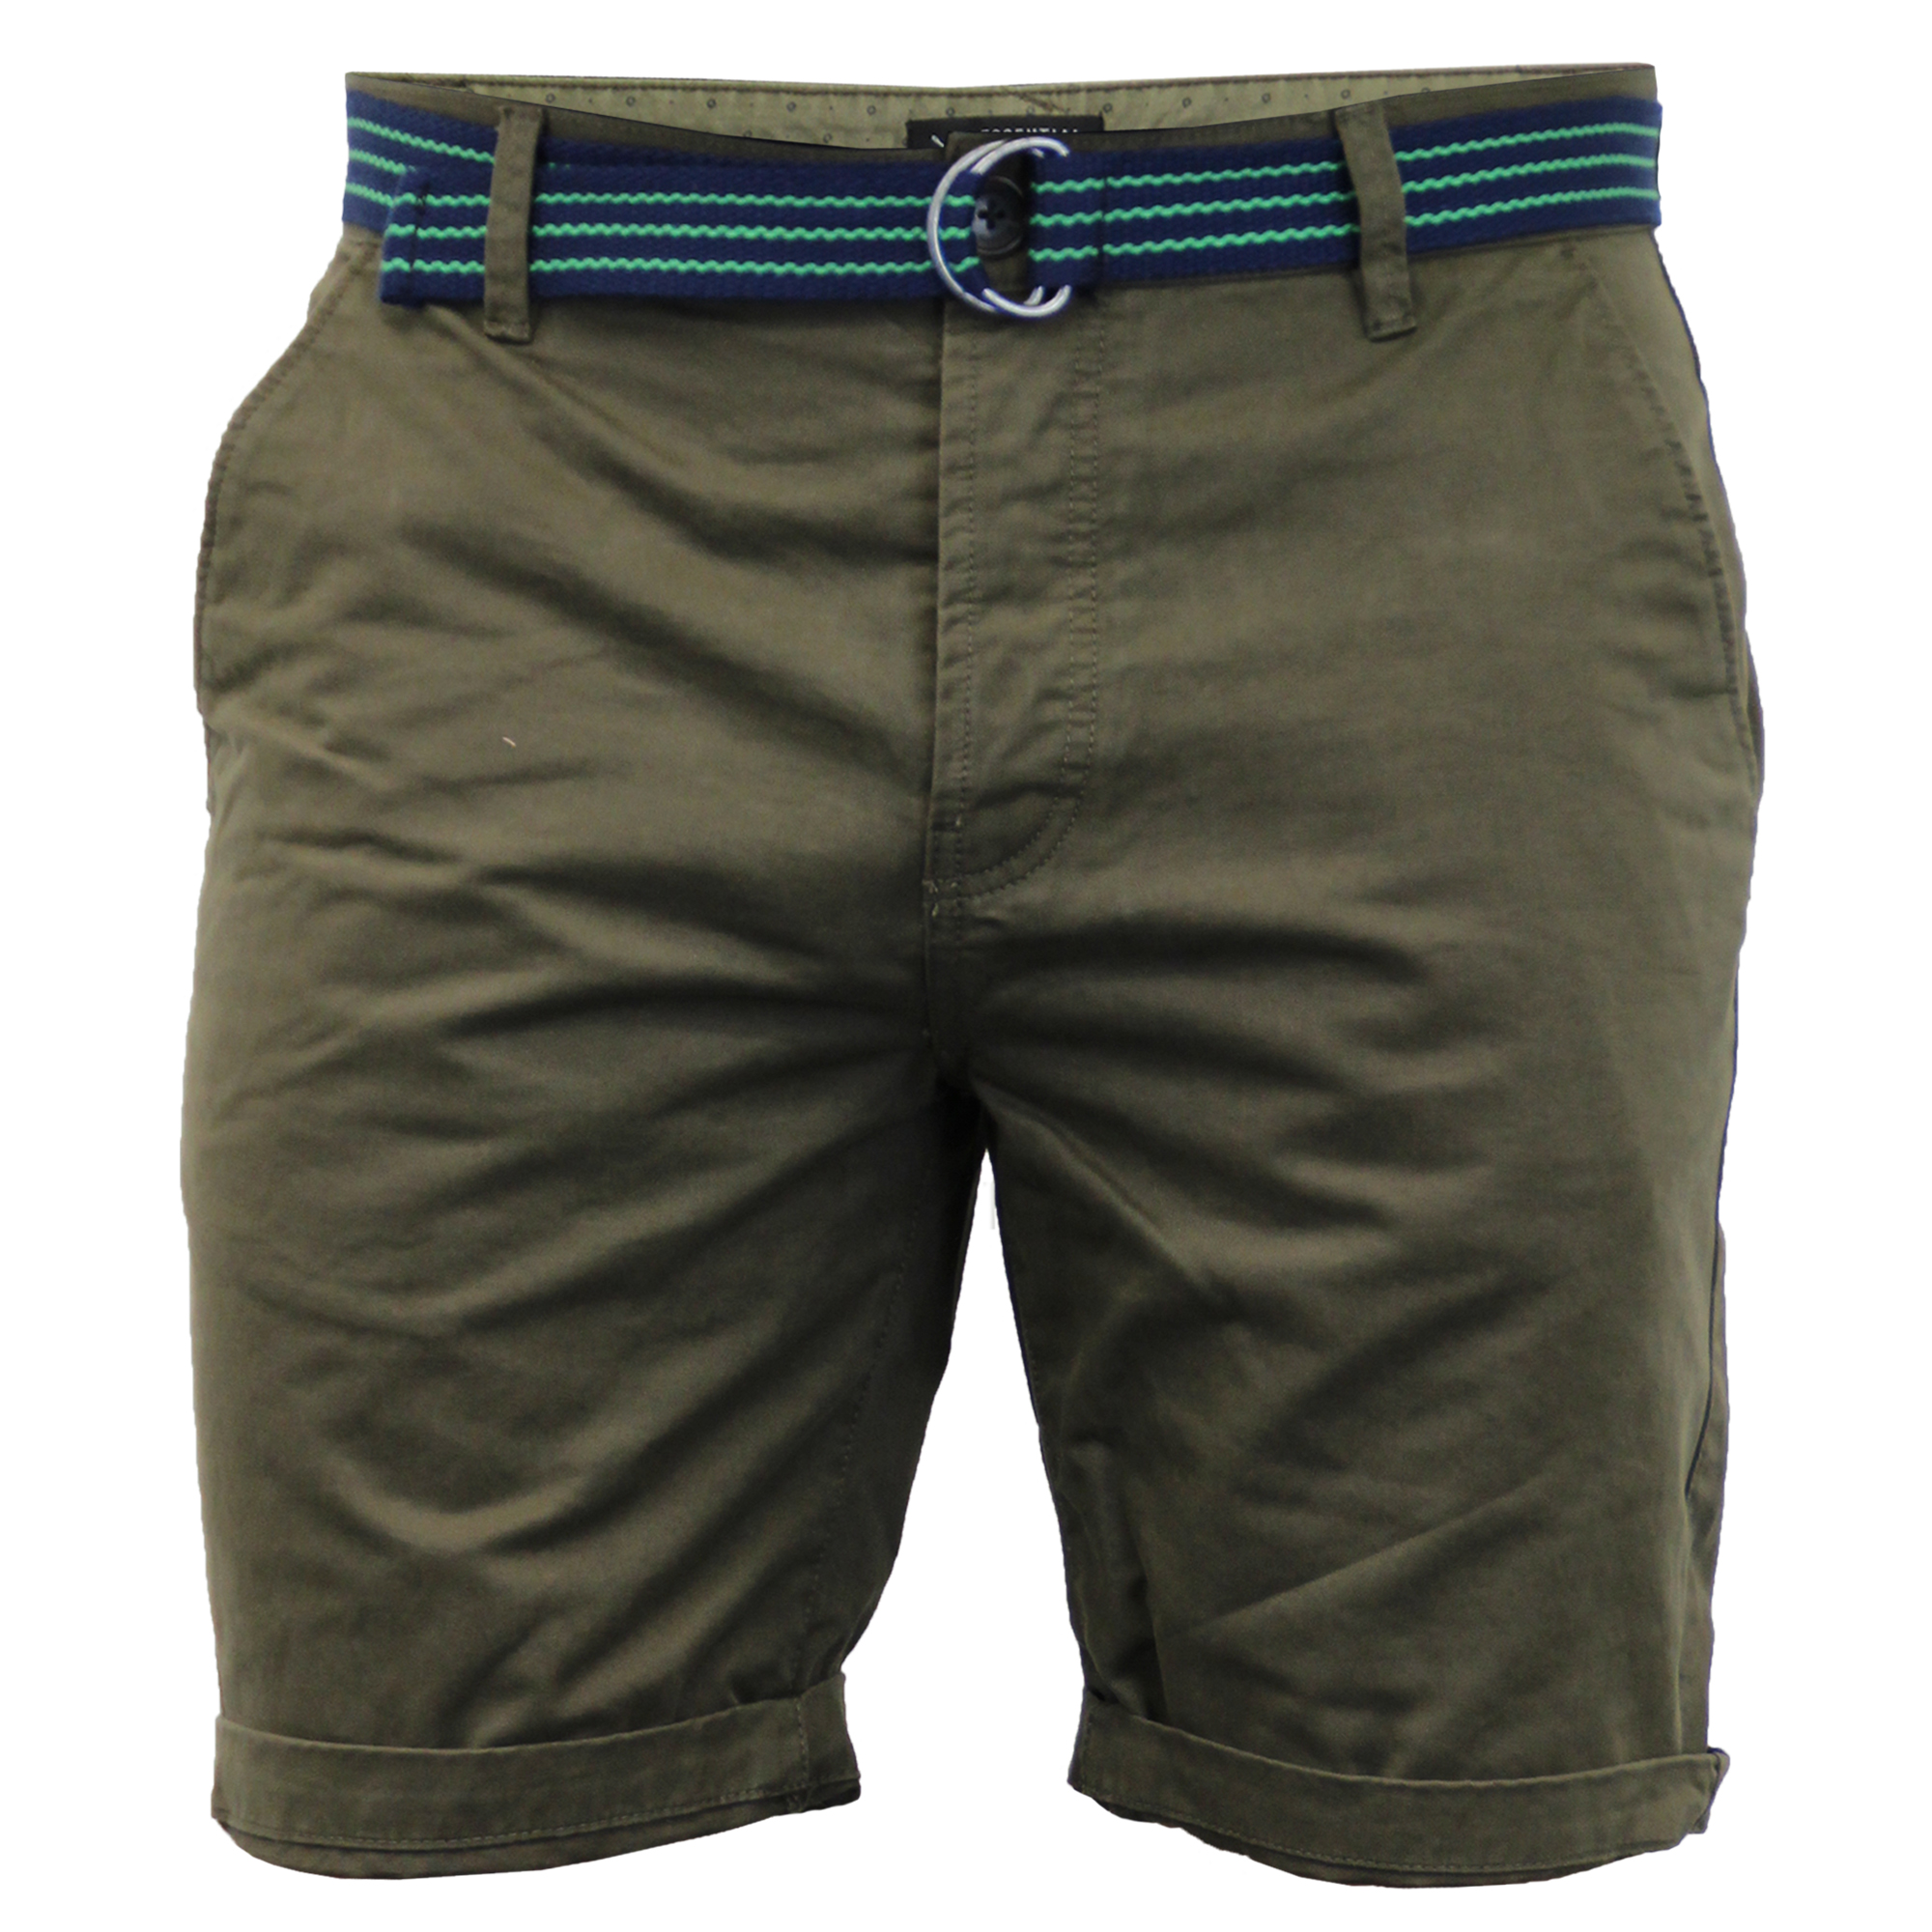 Mens-Chino-Shorts-Threadbare-Belted-Westace-Pants-Knee-Length-Roll-Up-Summer-New thumbnail 2